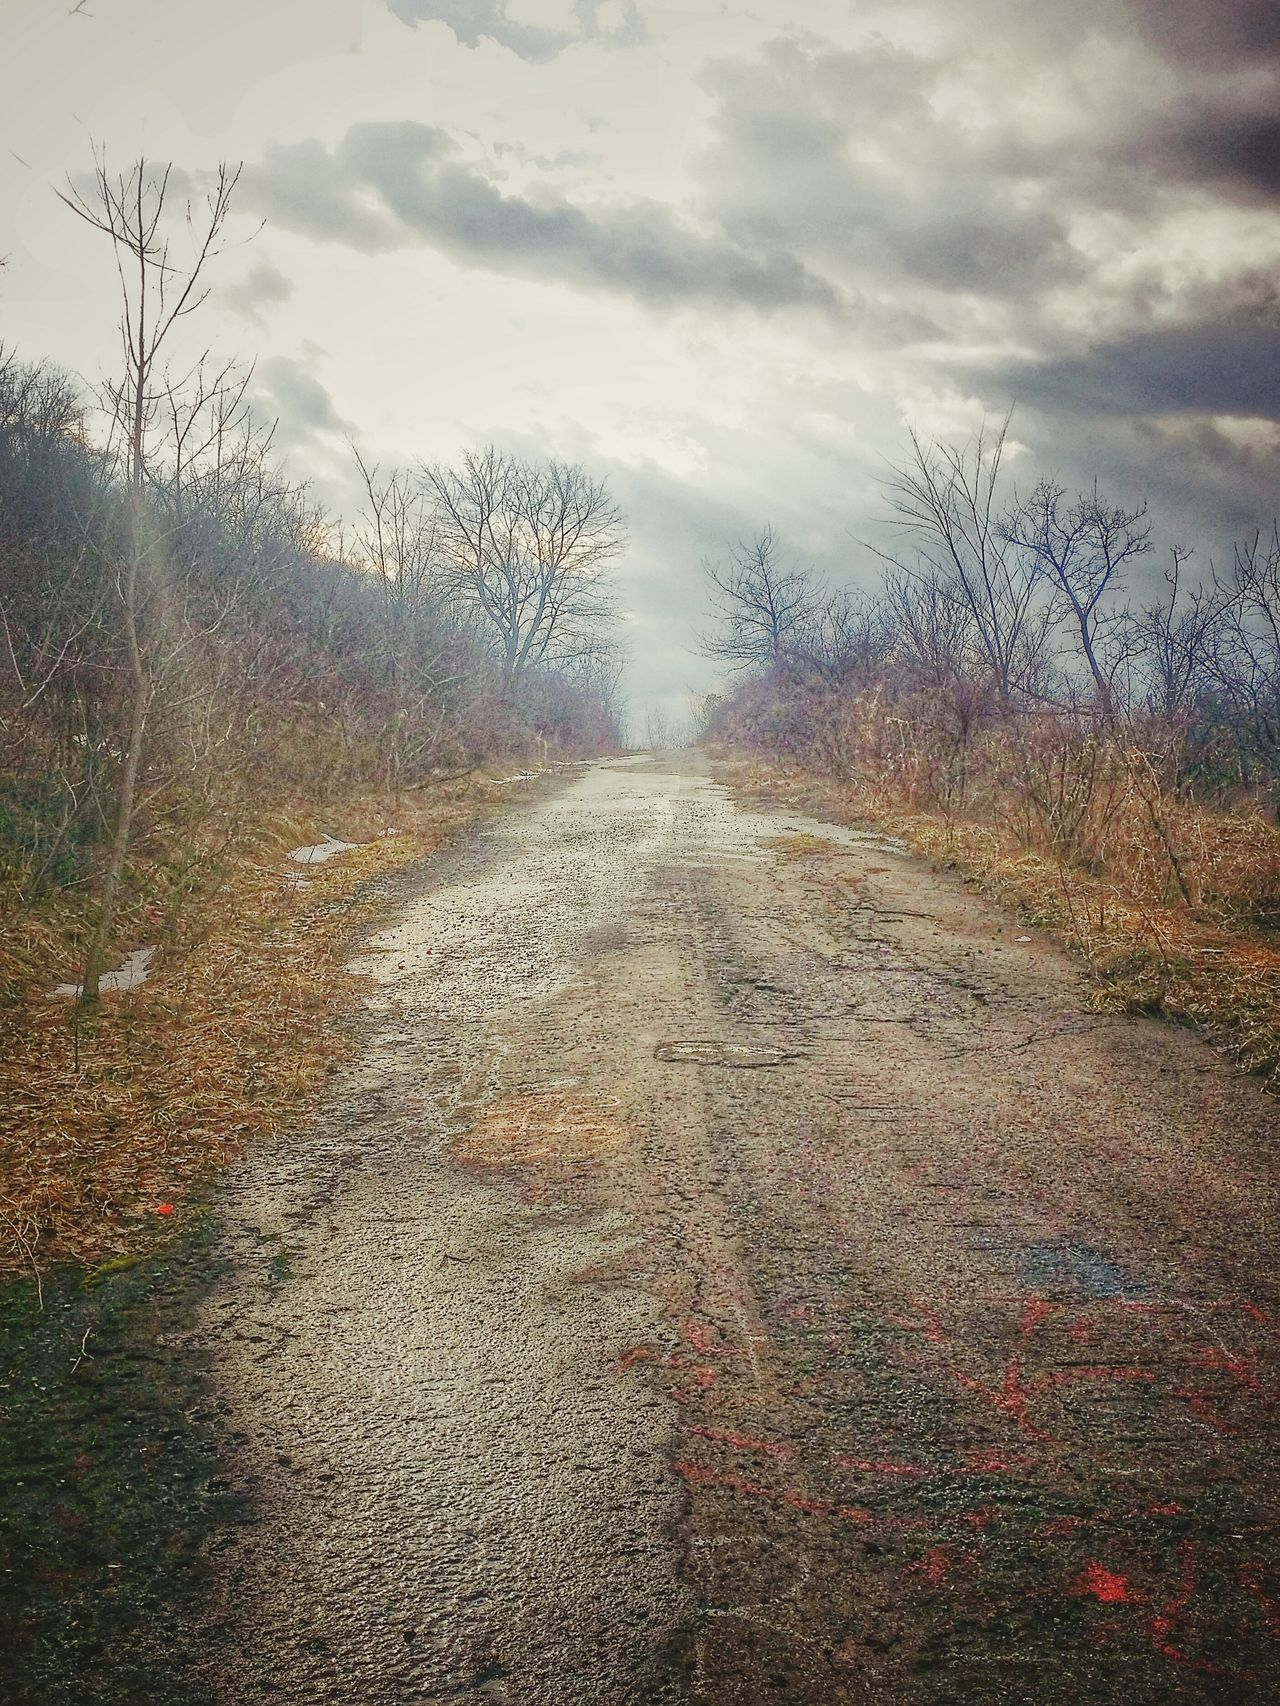 The Road Less Traveled road to split rock quarry Road Trip Graffiti Rural Exploration Trees And Sky Nature Photography Country Walks Creepy Places Hill Top Walking Uphill